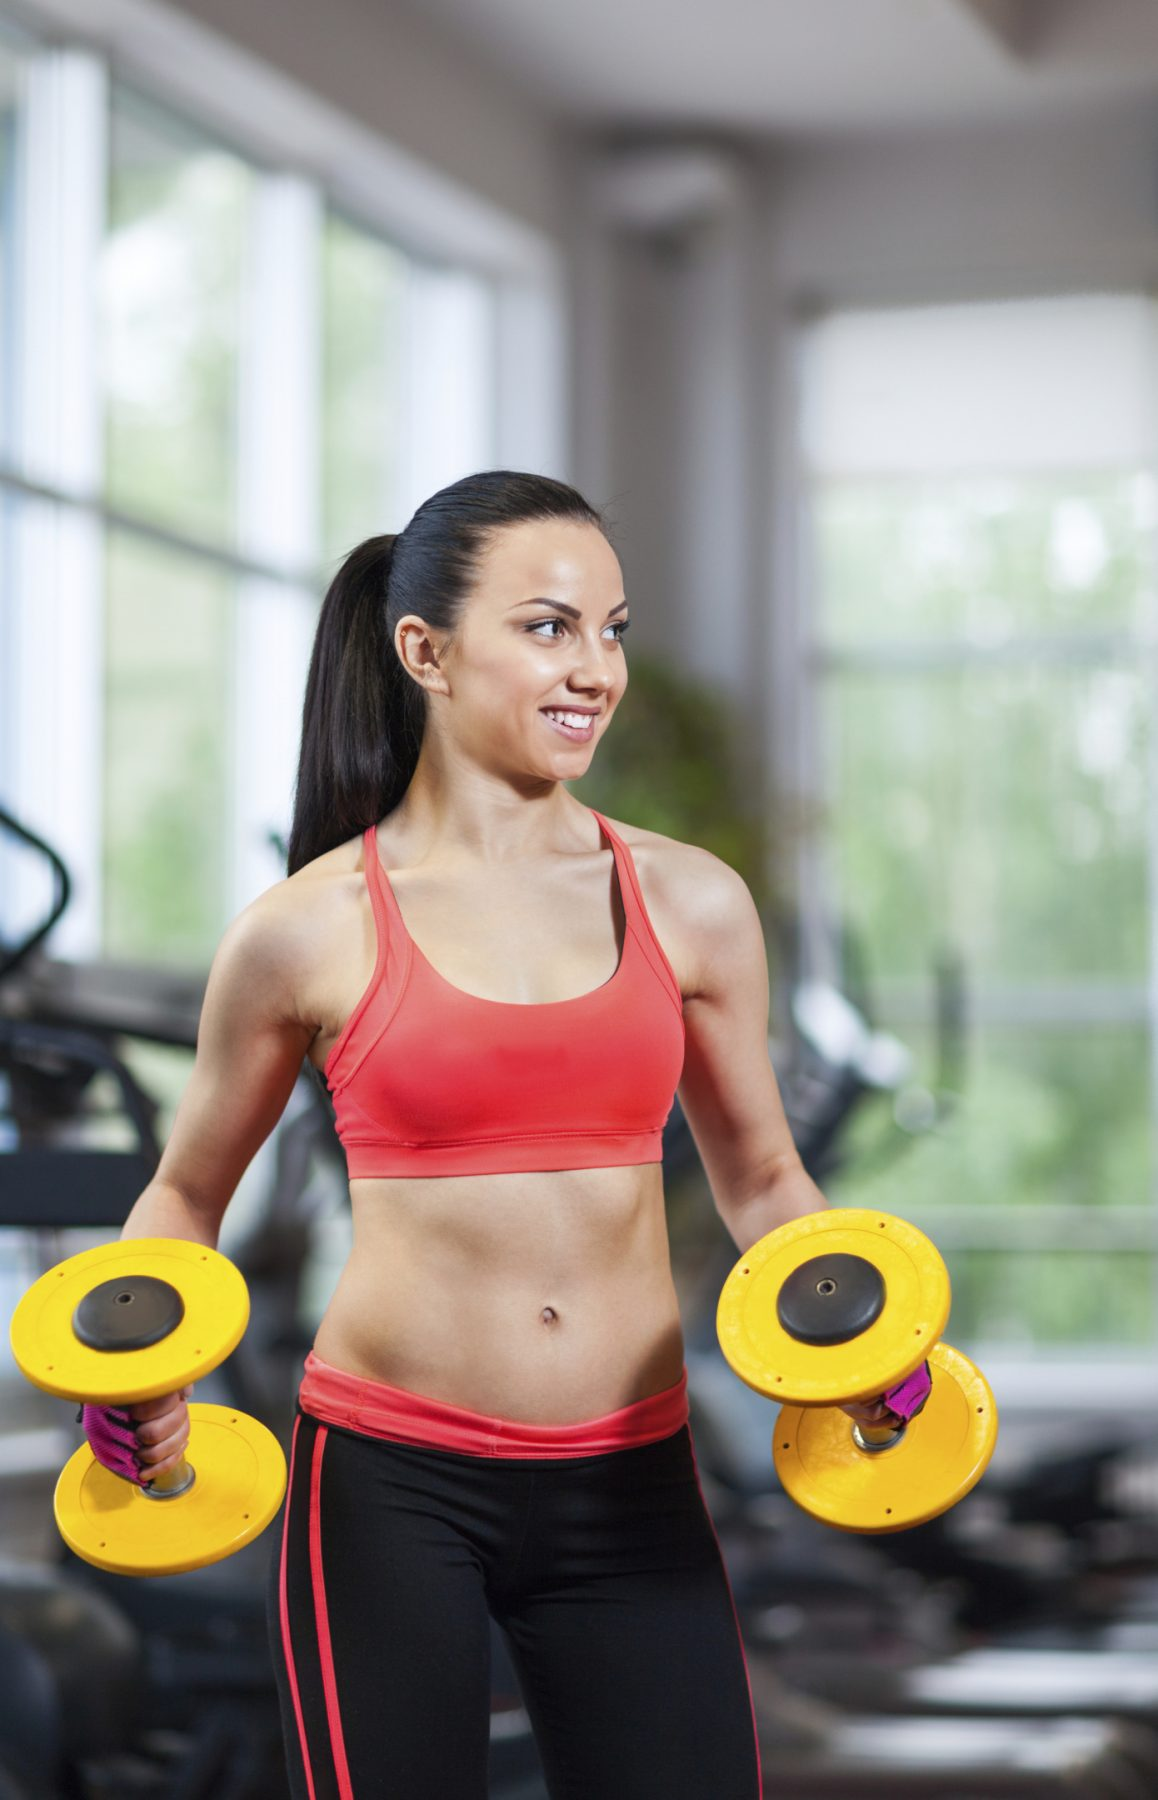 3 Reasons Women Should Lift Weights